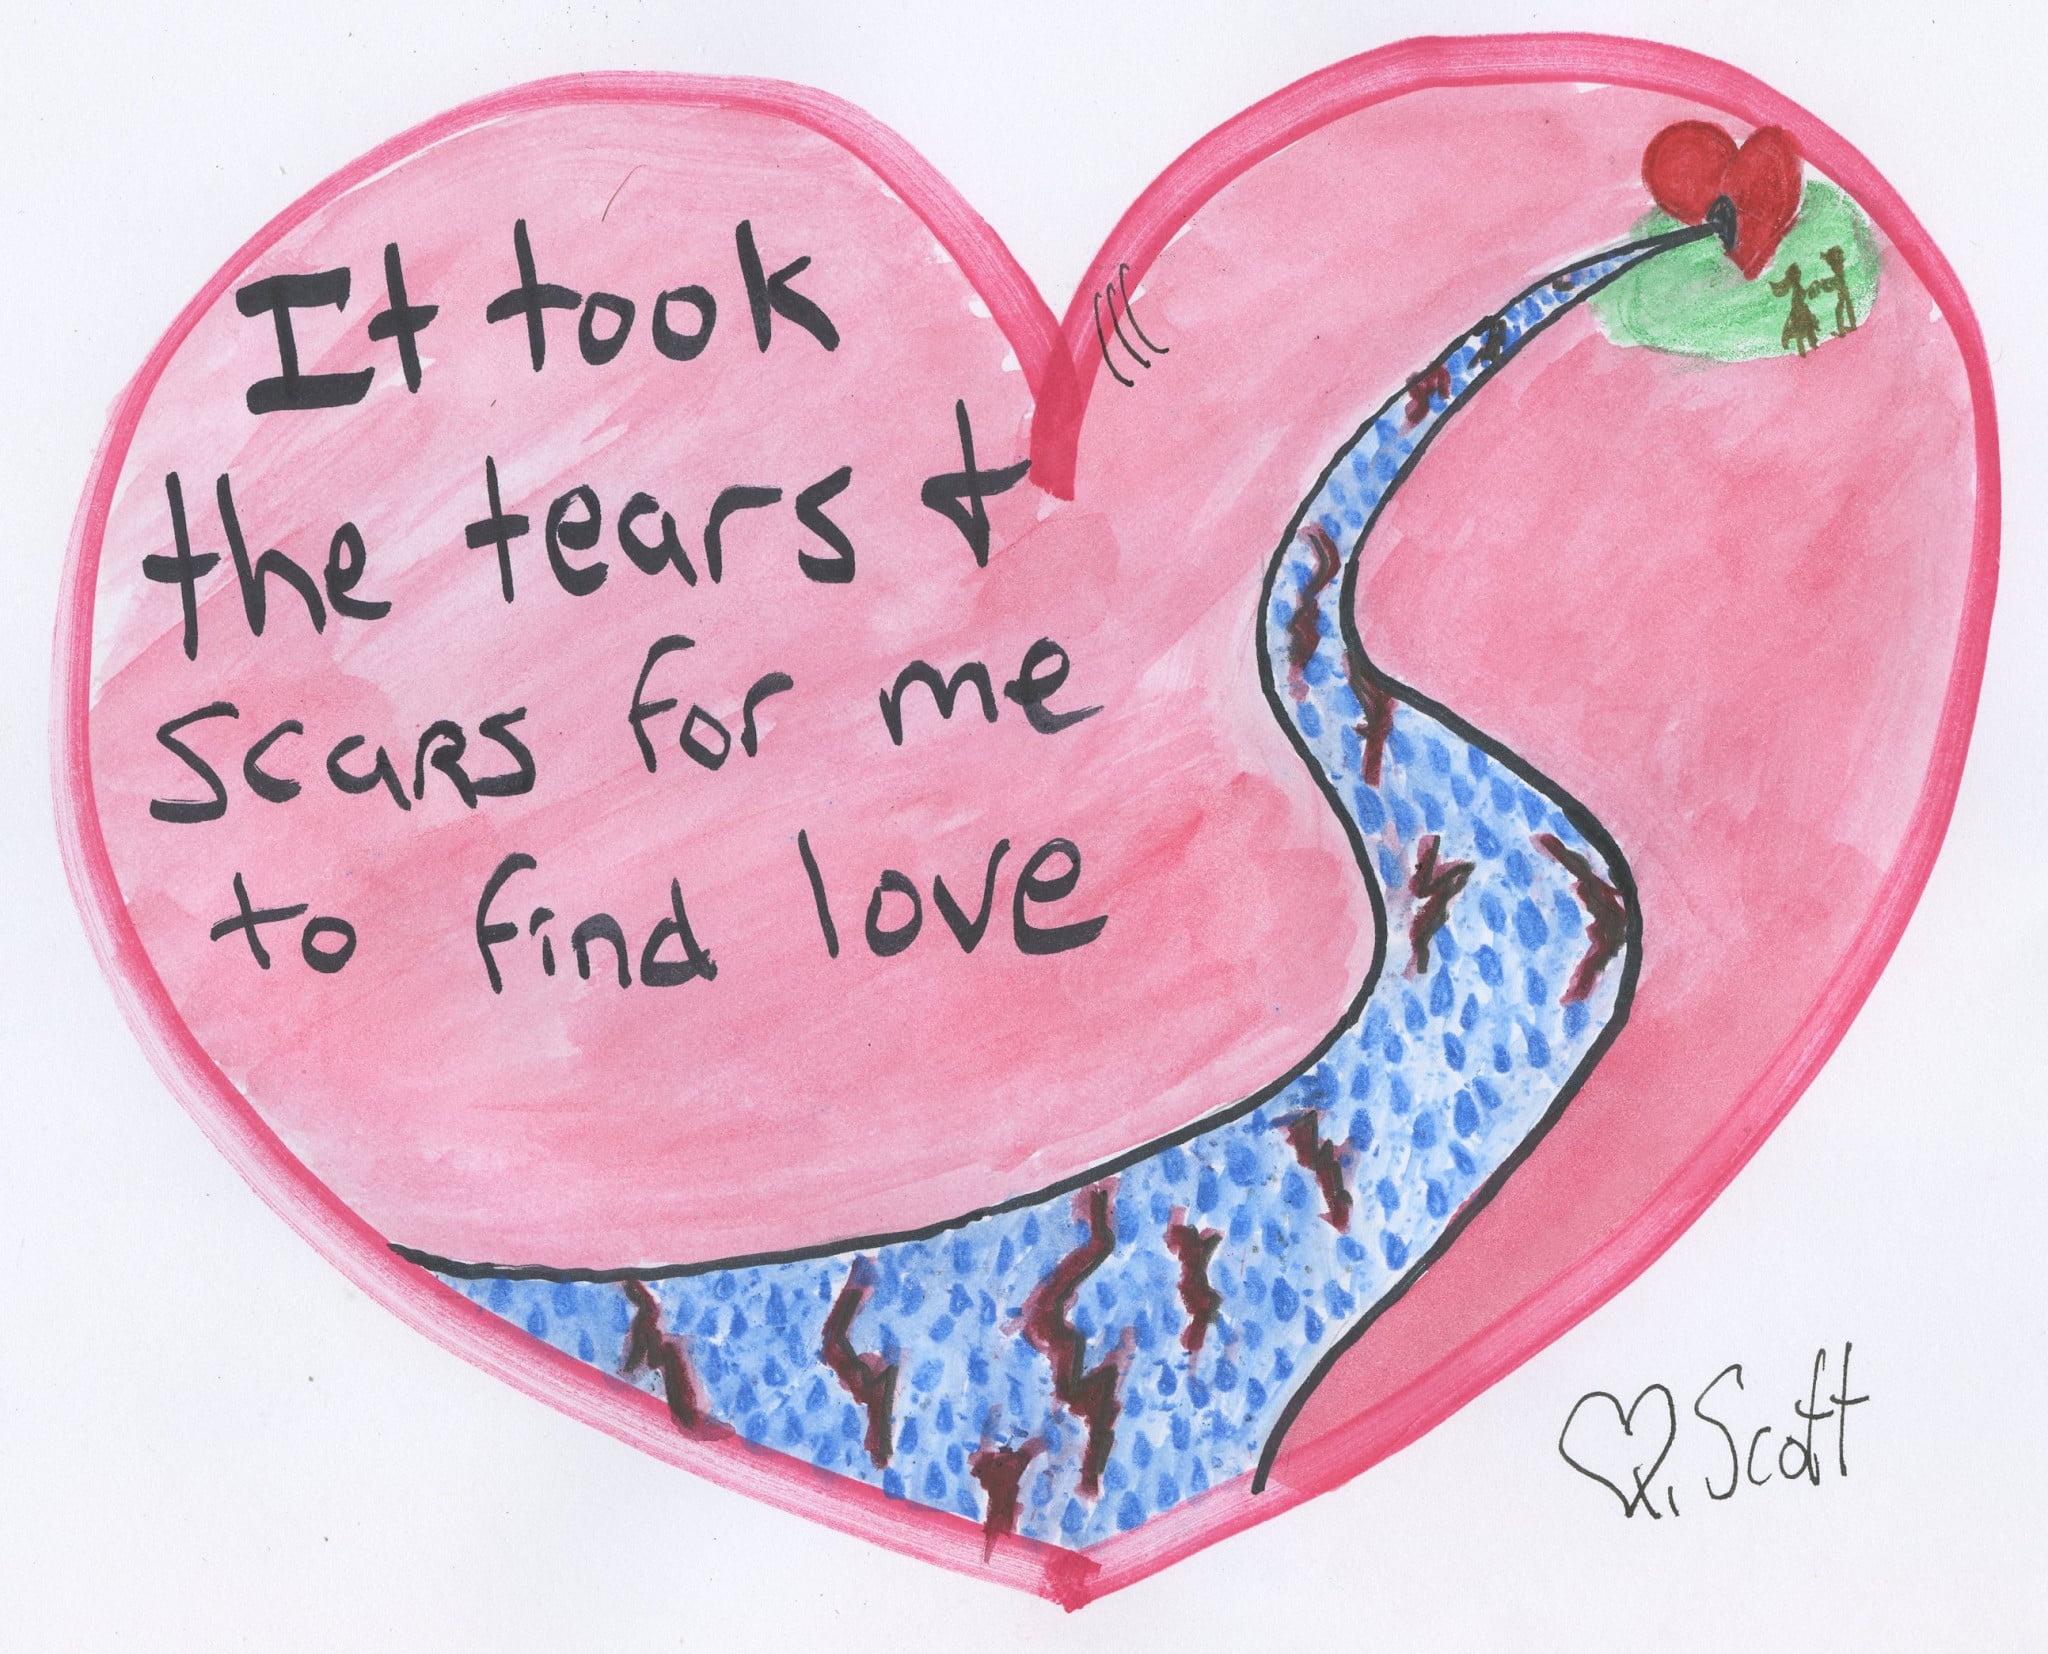 It took the tears and scars for me to find love